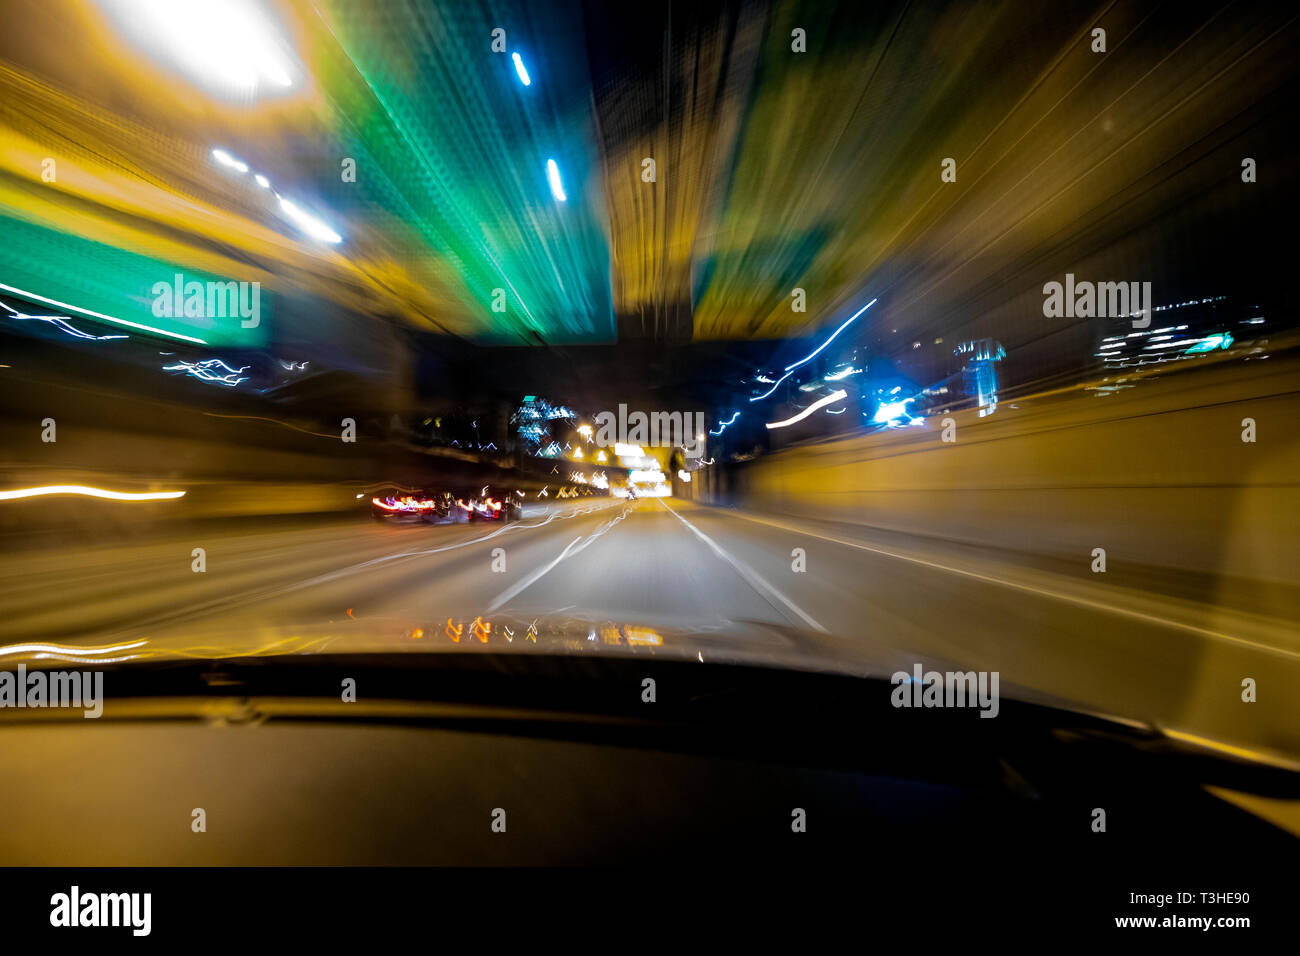 WA17078-00...WASHINGTON -  Driving Interstate 5 at night near Seattle. - Stock Image